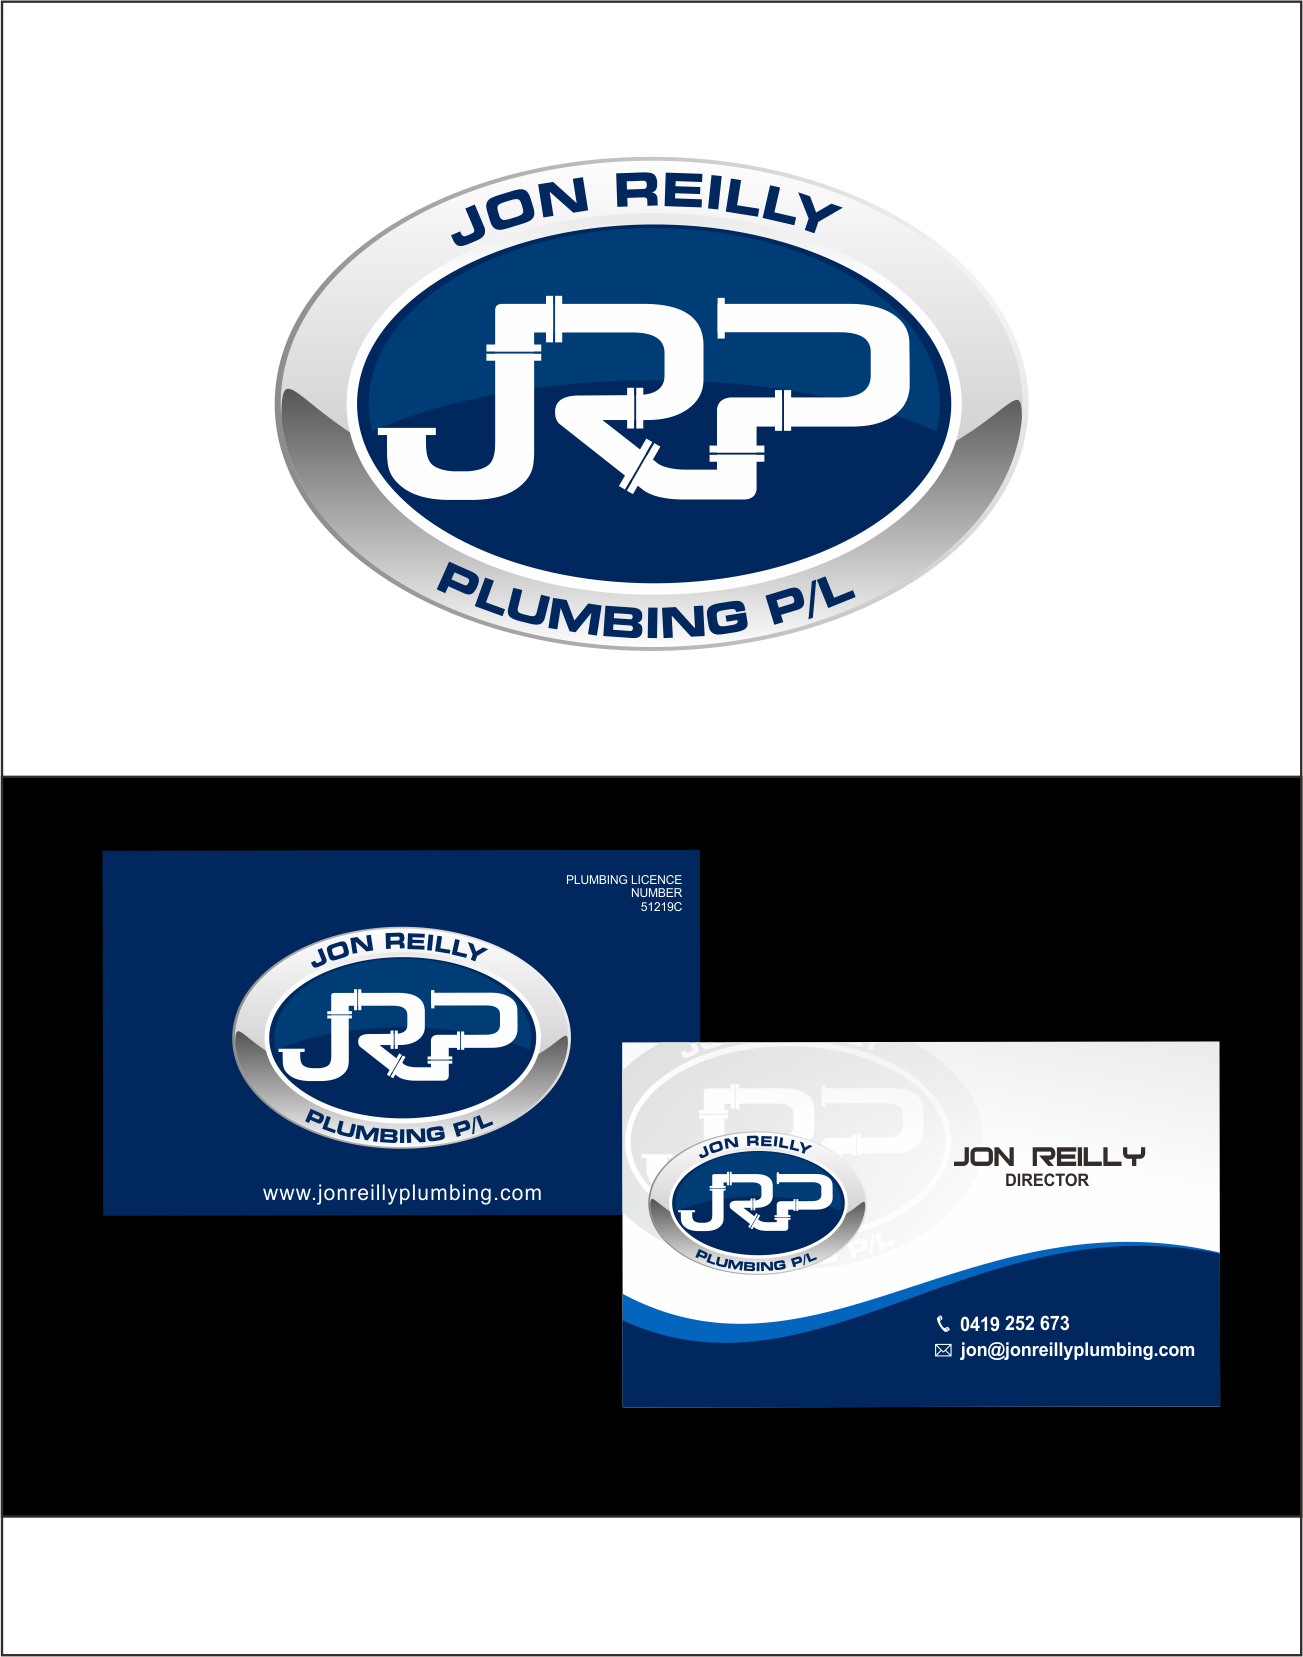 Help Jon Reilly Plumbing P/L with a new logo and business card